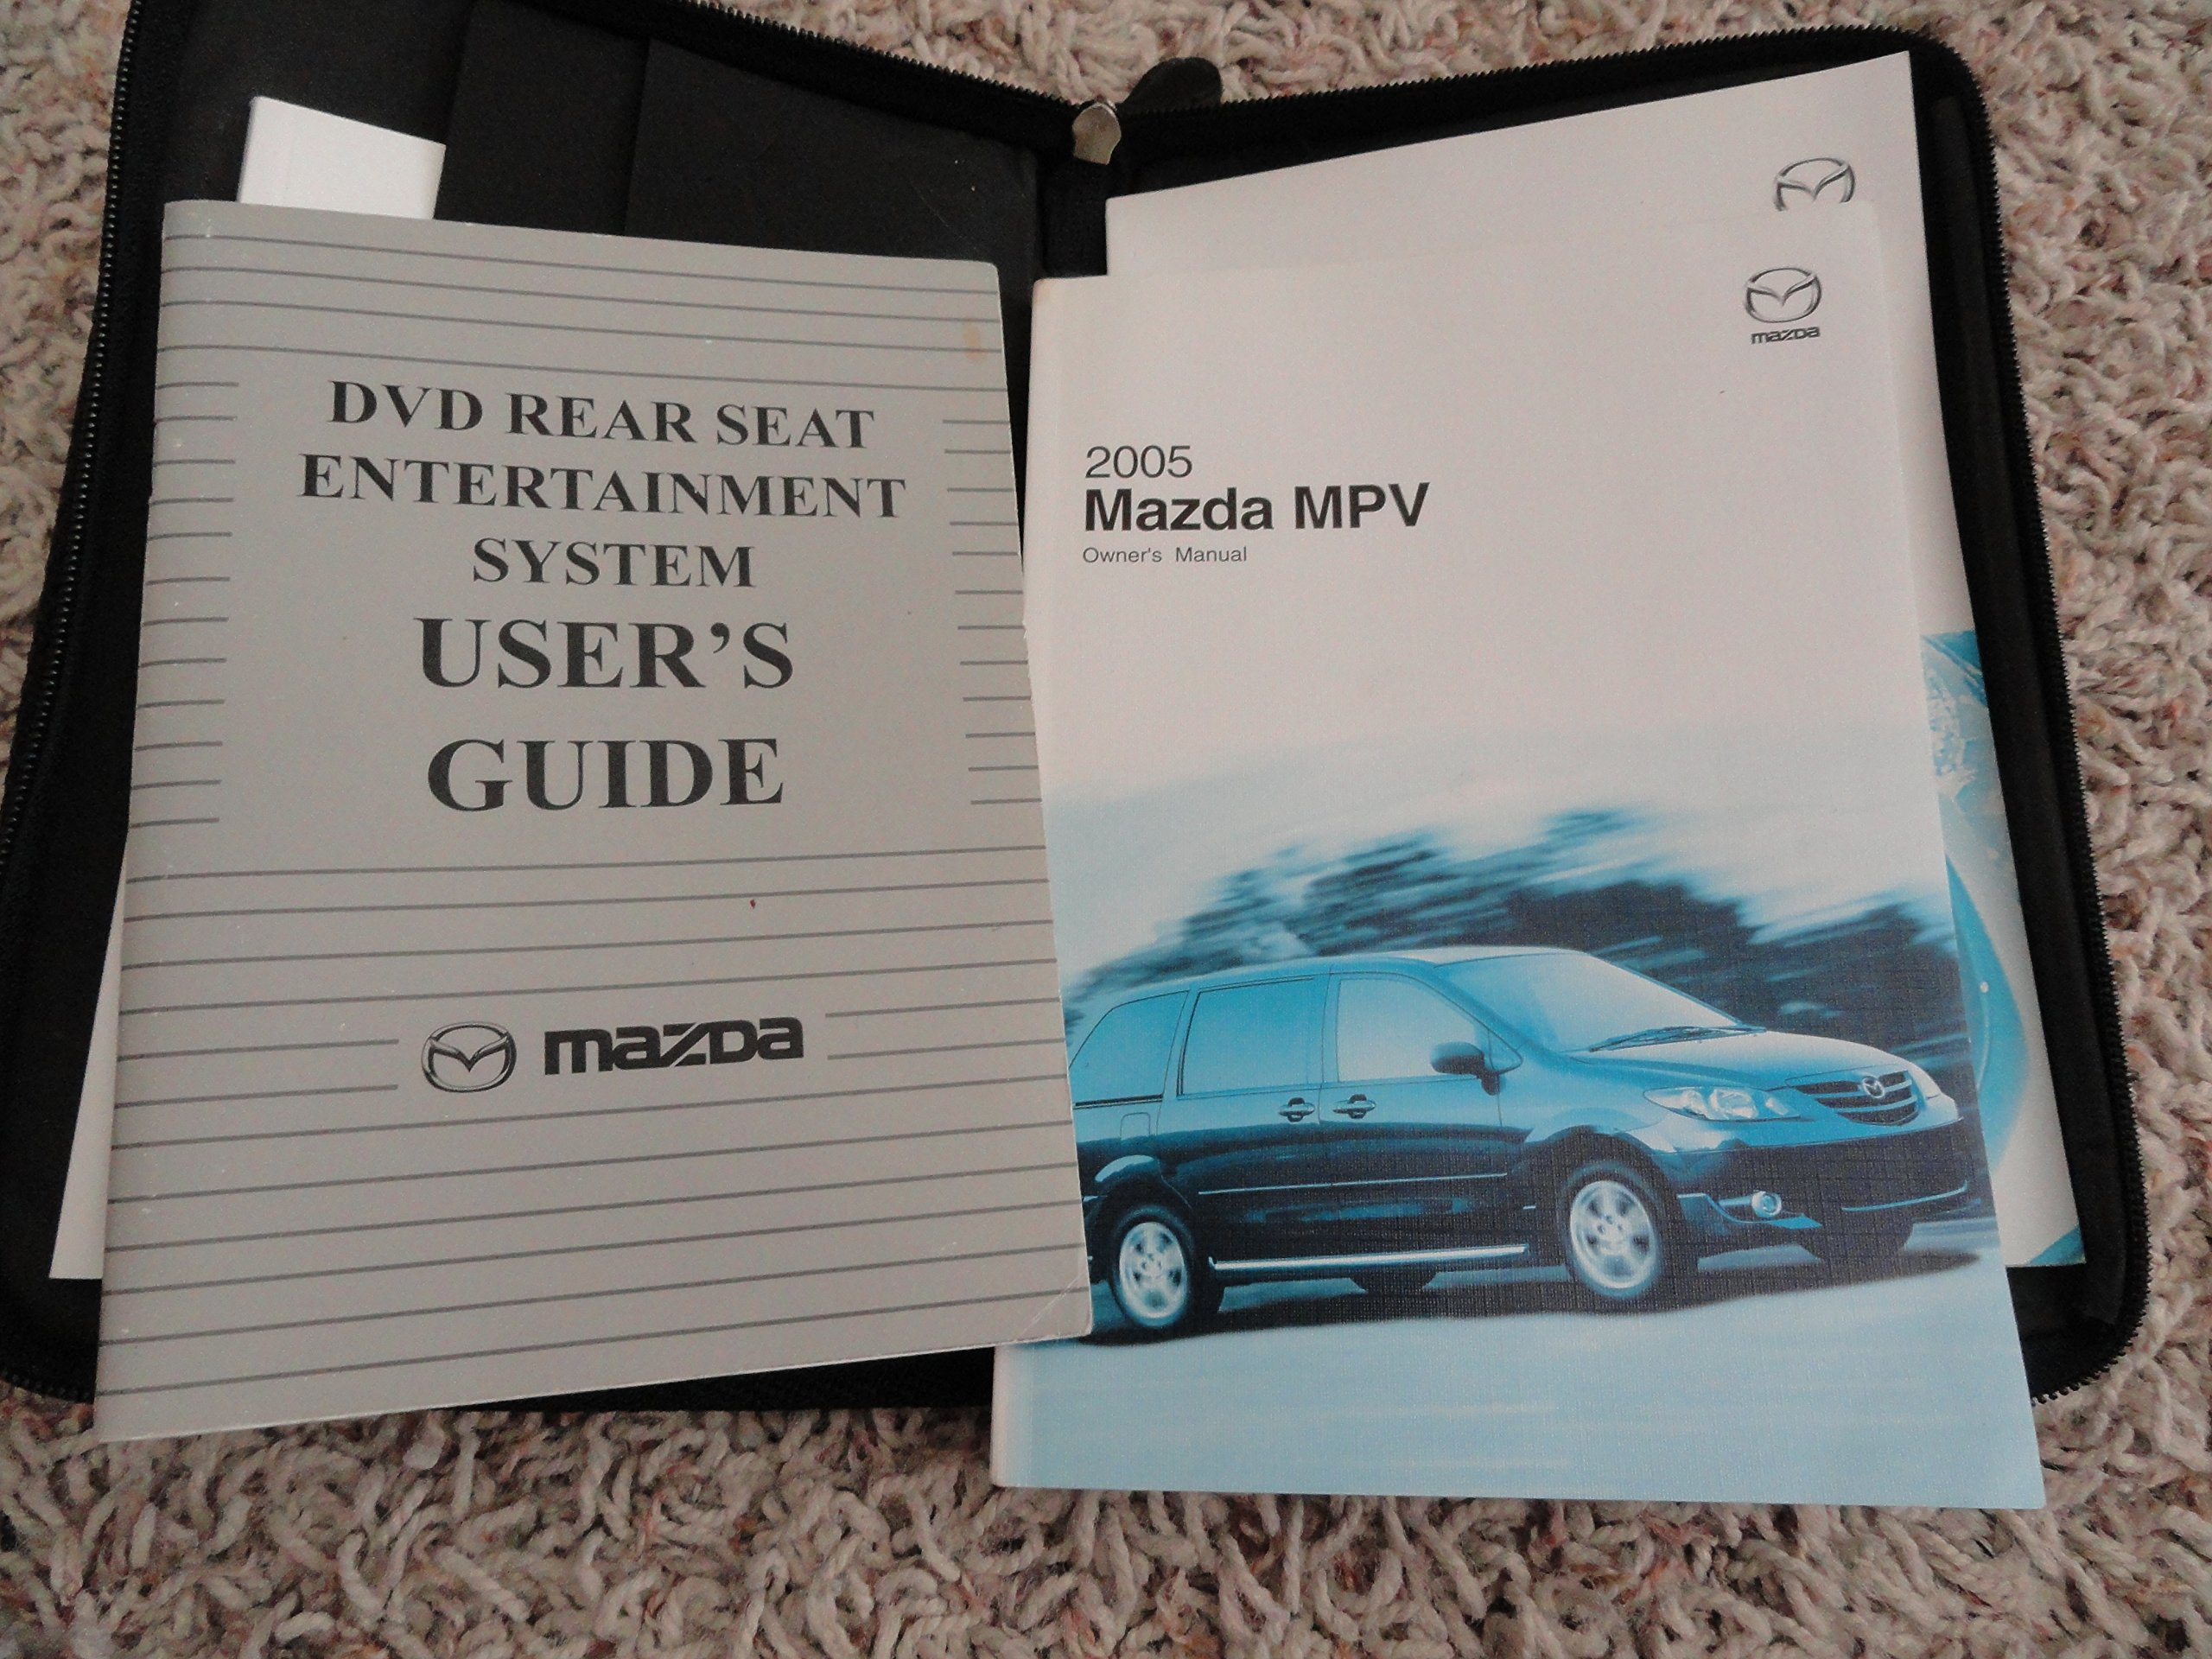 2005 mazda mpv owners manual amazon com books rh amazon com 2003 Mazda MPV ES Problems 2003 Mazda MPV ES Problems